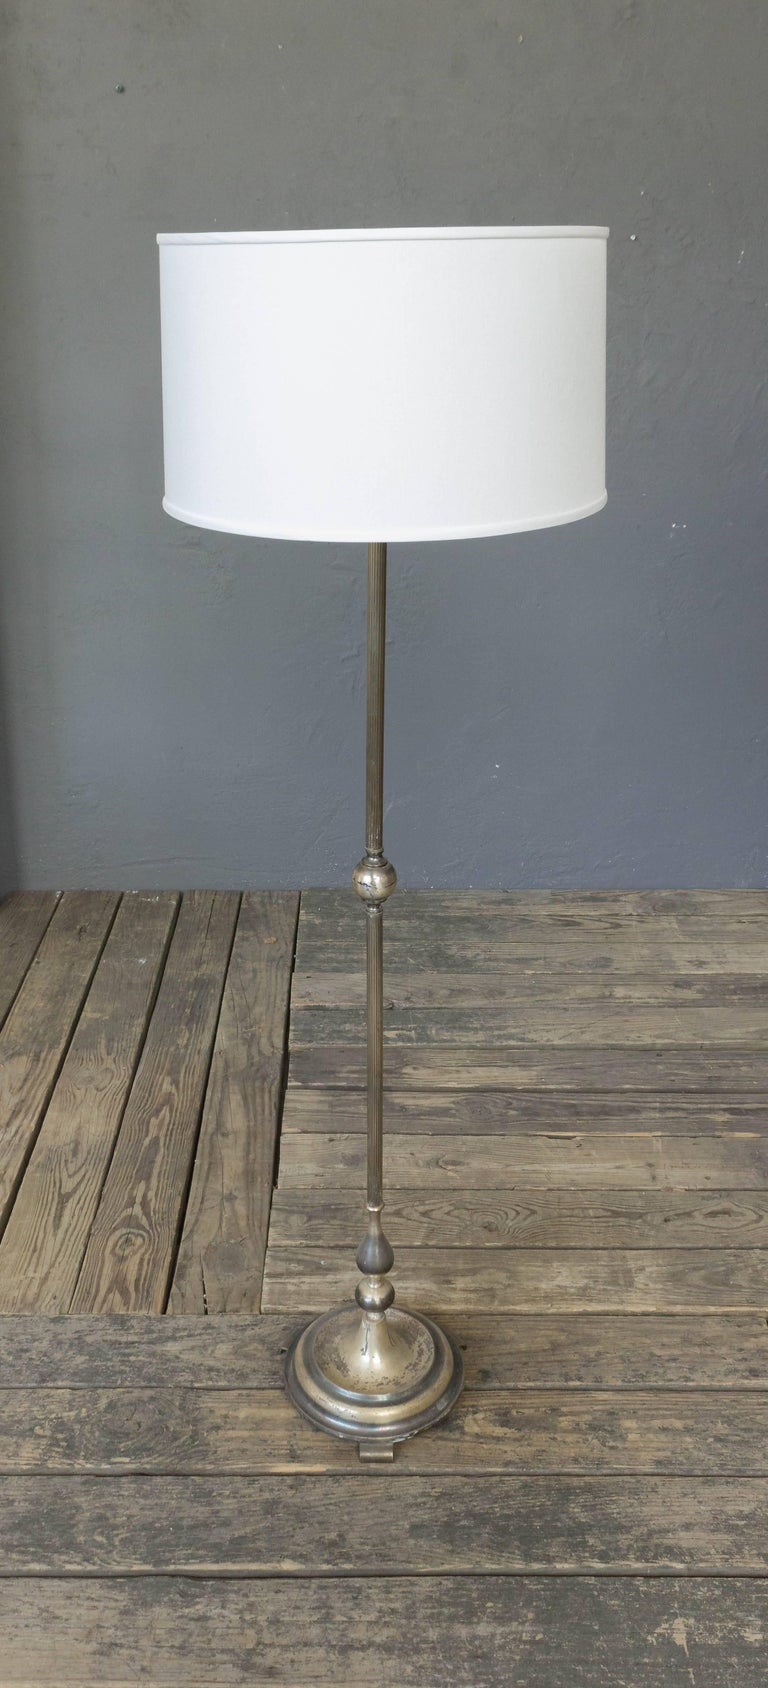 French Mid Century Modern Silver Plated Floor Lamp For Sale At 1stdibs Wiring A Silvered On Round Base Price Includes Polishing Or Plating